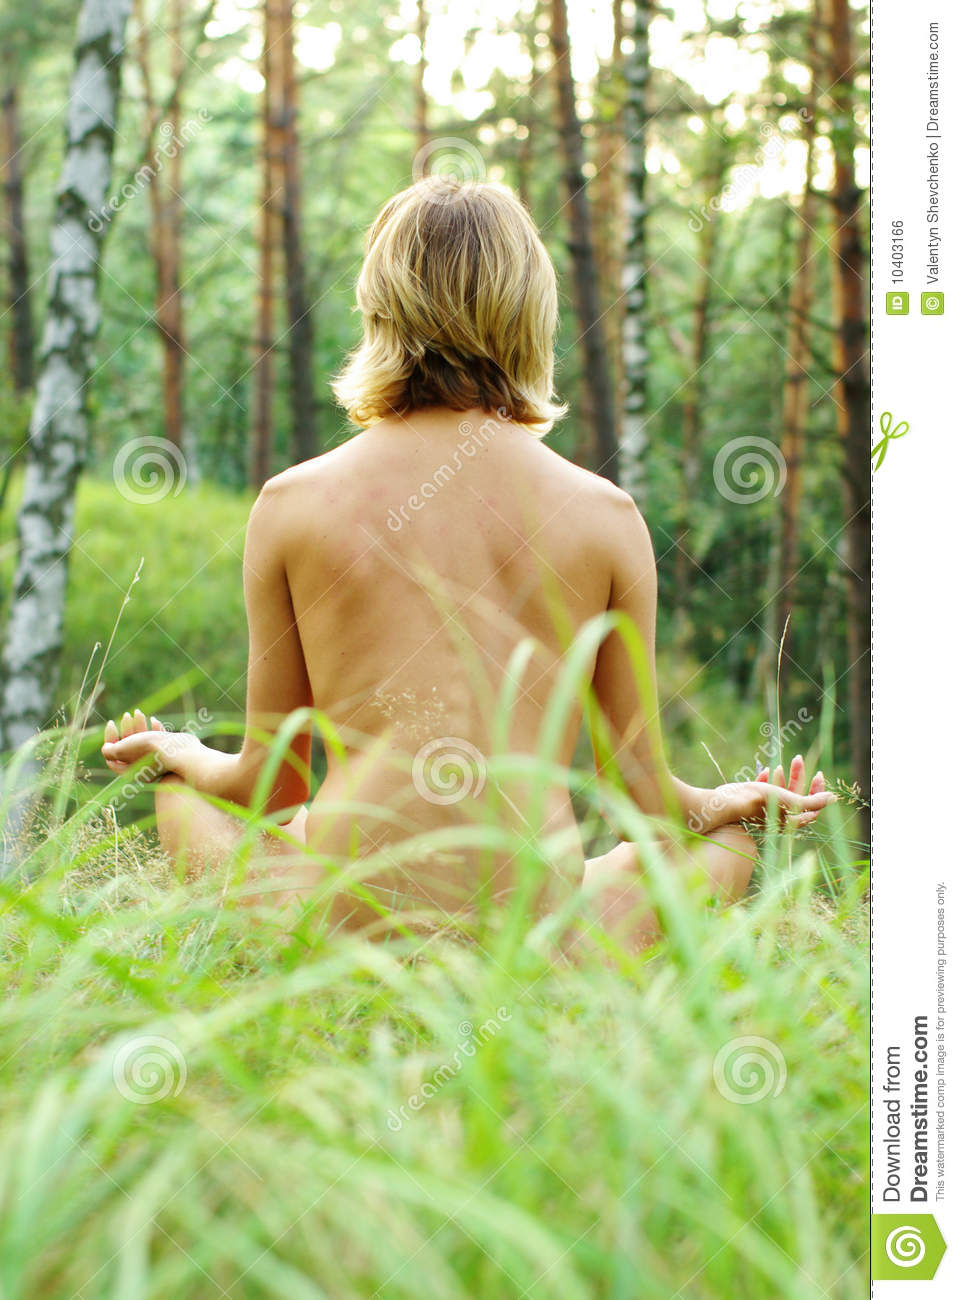 Meditation in the forest stock photo. Image of grass